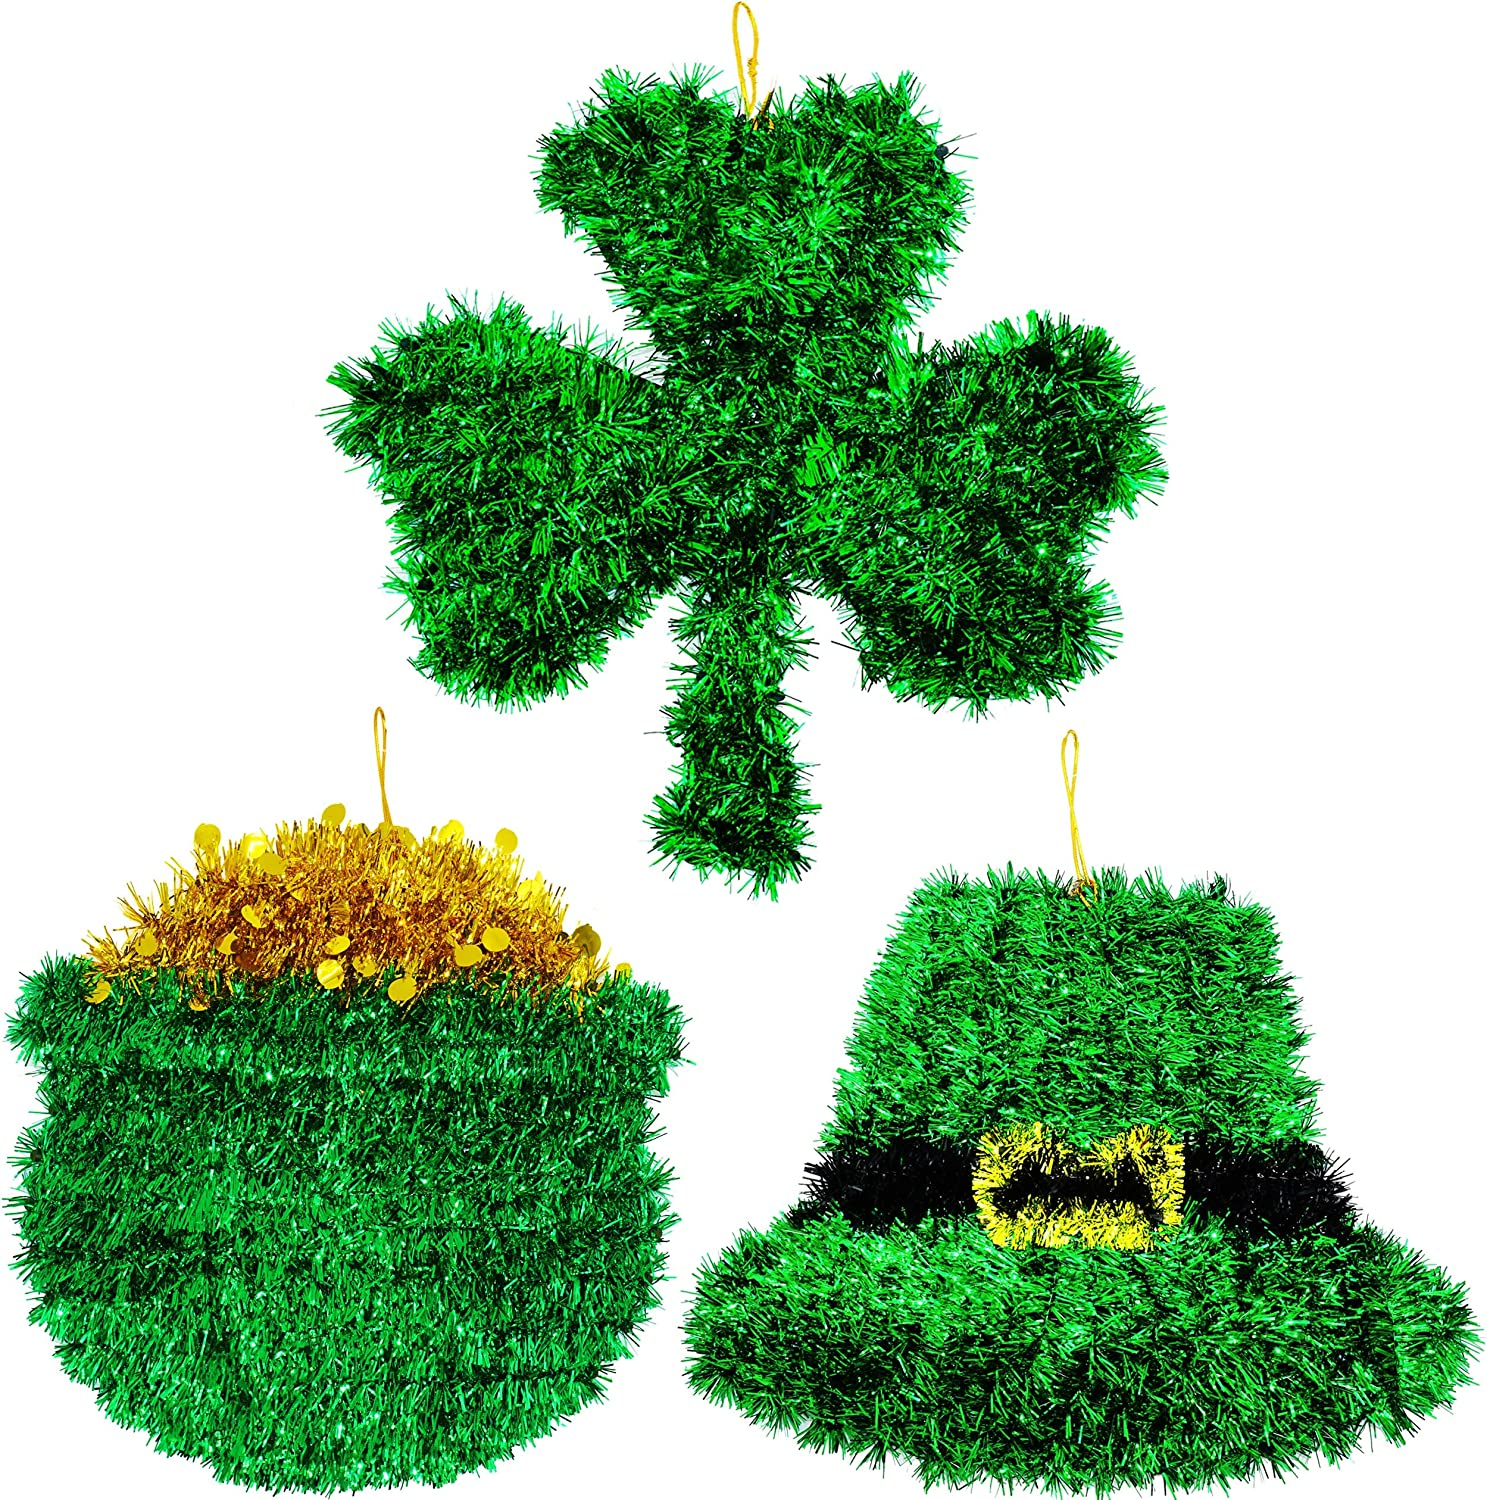 4E's Novelty St Patricks Day Door Decorations Wreath Sign Decor 3 Pcs Tinsel Hanging Wall Sign Decor for Home, Green Shamrock St. Patrick's Day Decorations for Indoor Outdoor Front Door 10 Inches